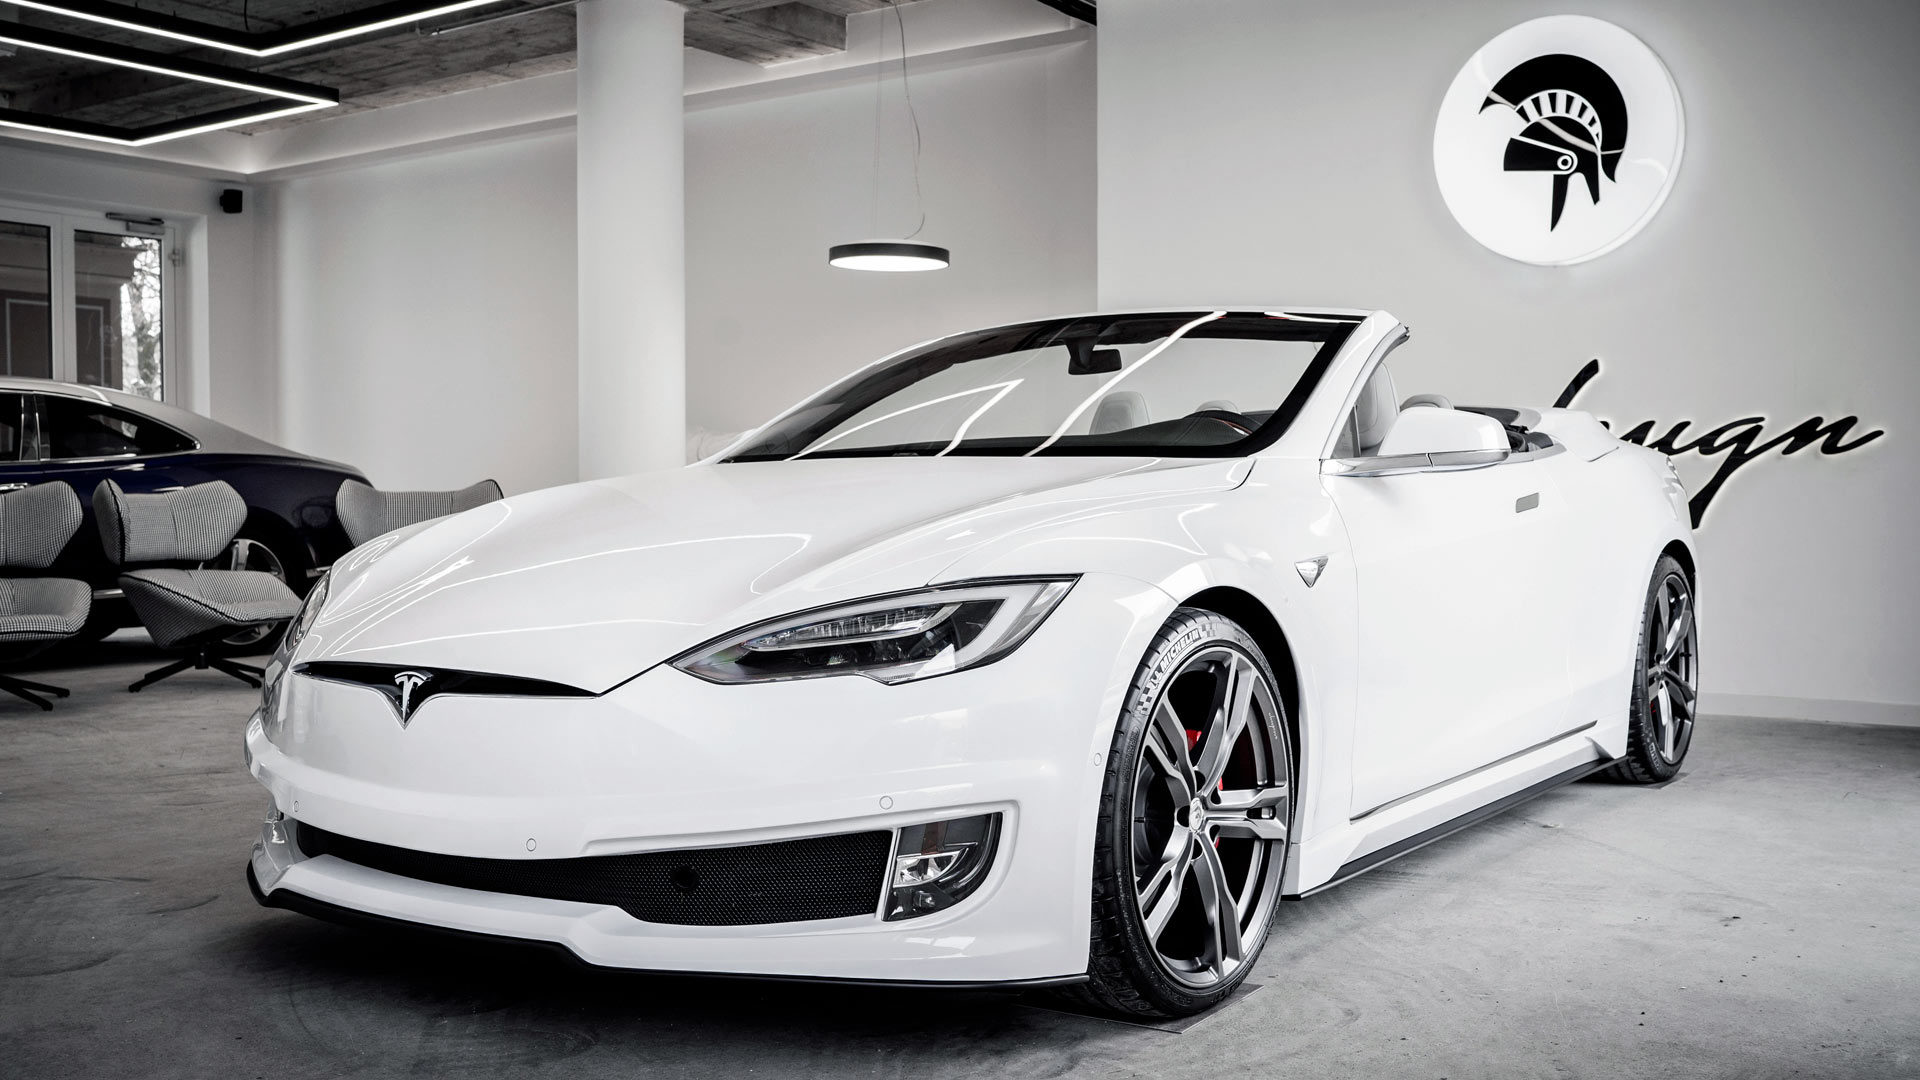 Ares reveals stunning Tesla Model S convertible conversion